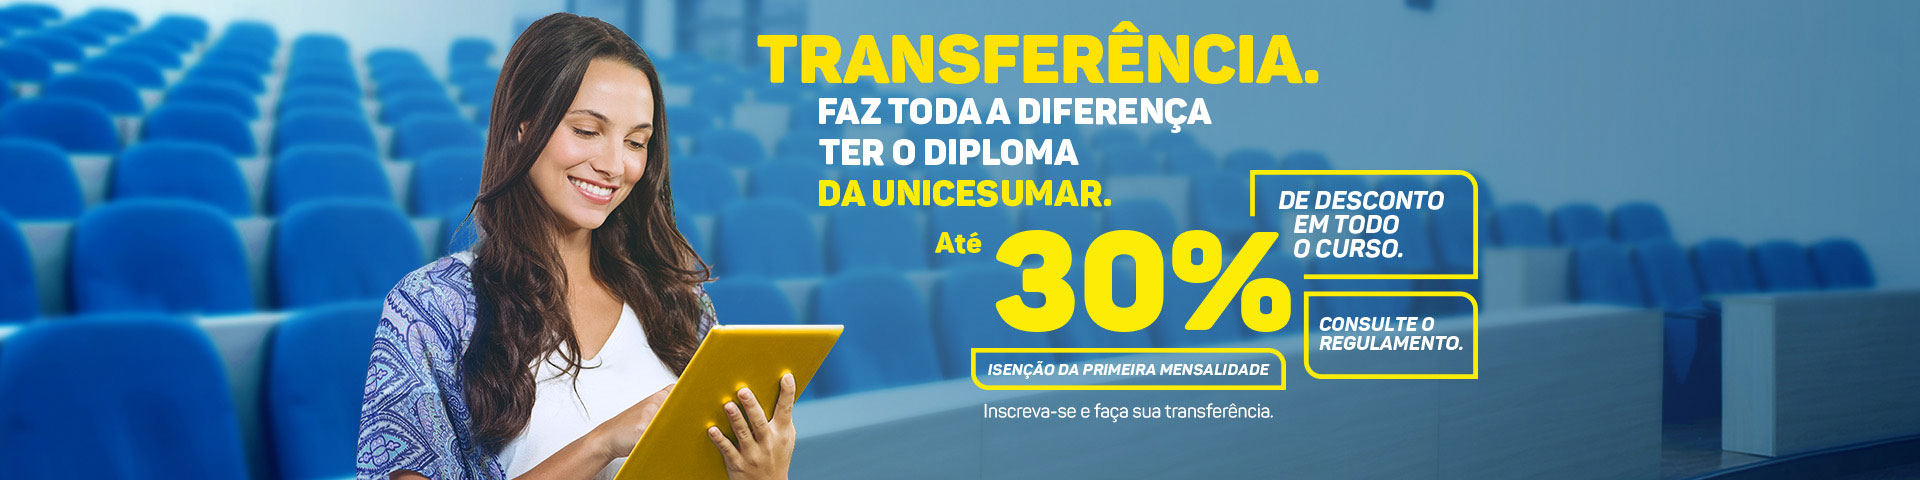 Banner-transferencia-2019-home-1920x480px-30p-Ponta-Grossa